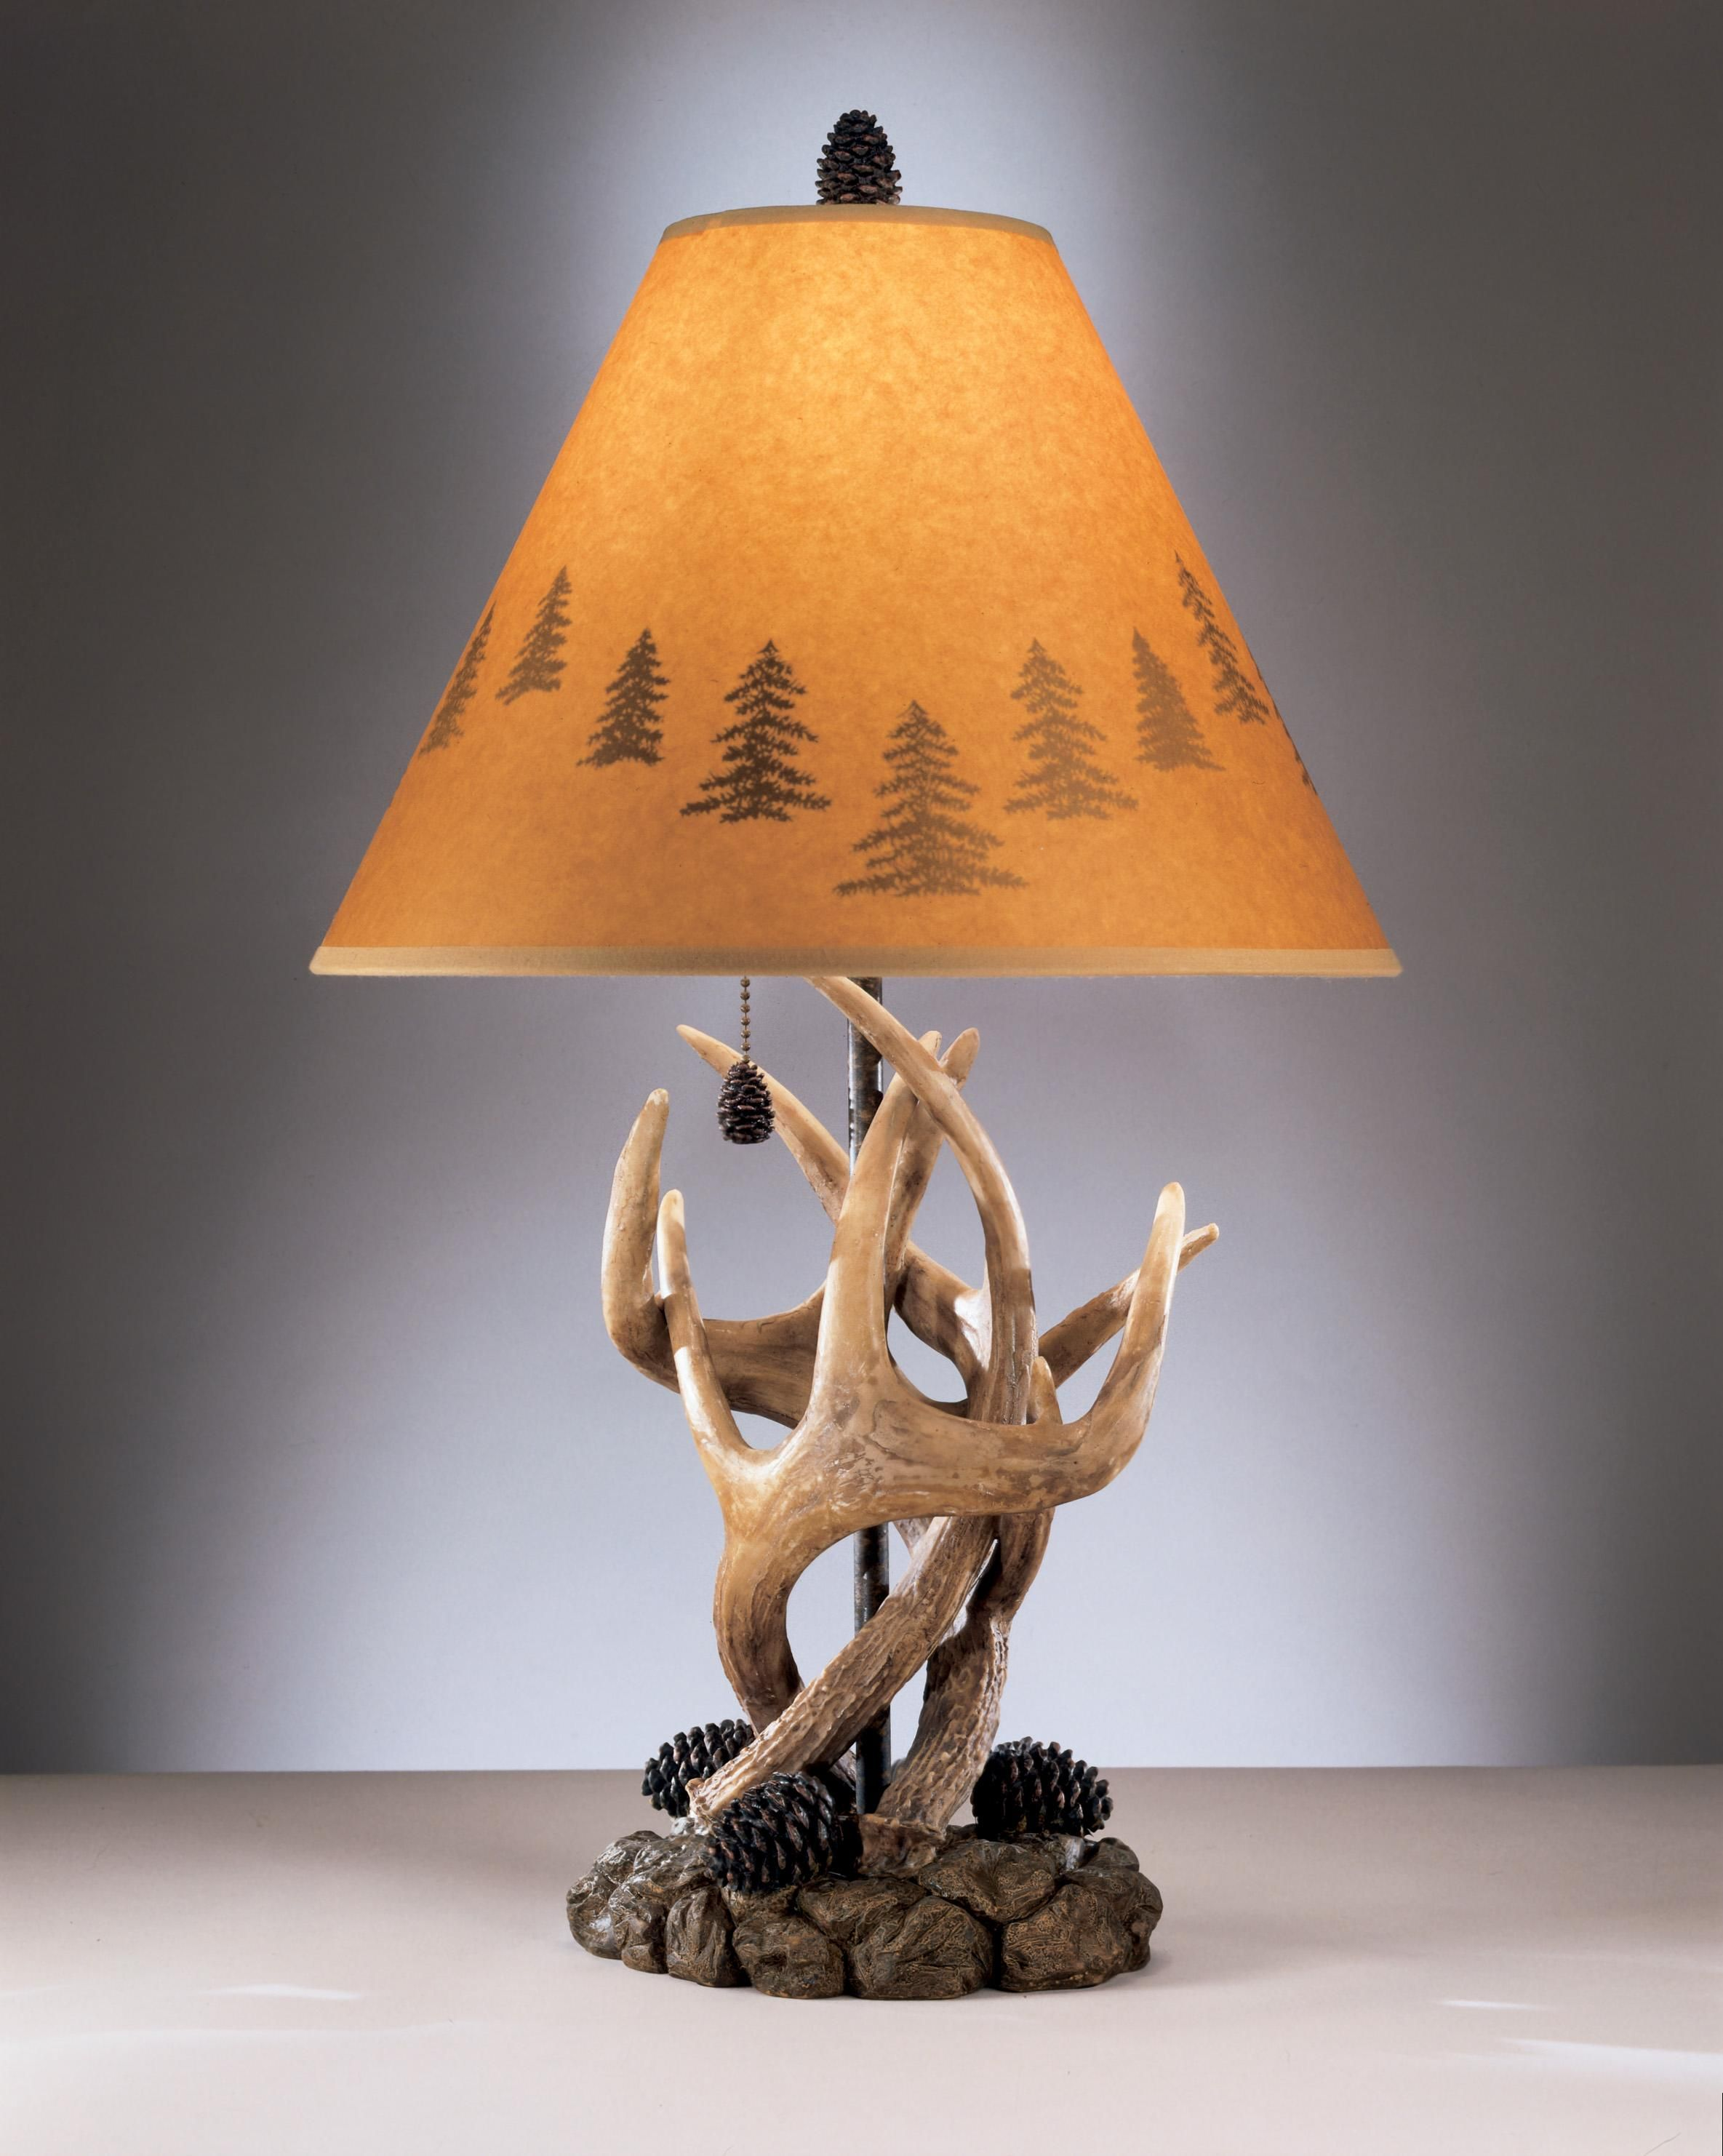 A rustic antlers and pine cone base table lamp topped with a ashley antlers table lamps set of hardback shade onoff switch pull chain type a bulb 100 watts max or 23 watts max cfl onoff pull chain switch geotapseo Images